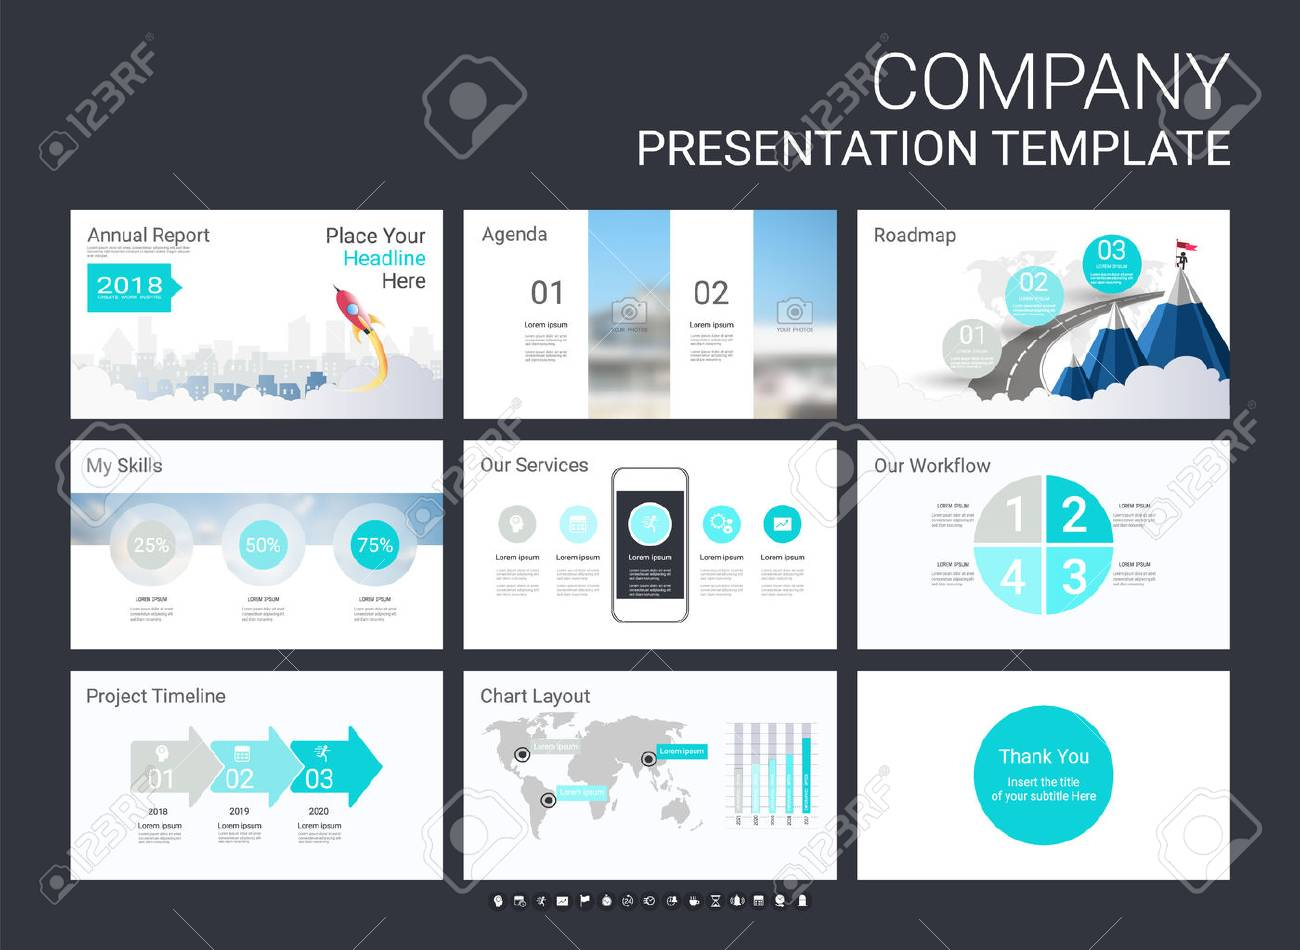 presentation template with infographic elements designs cover